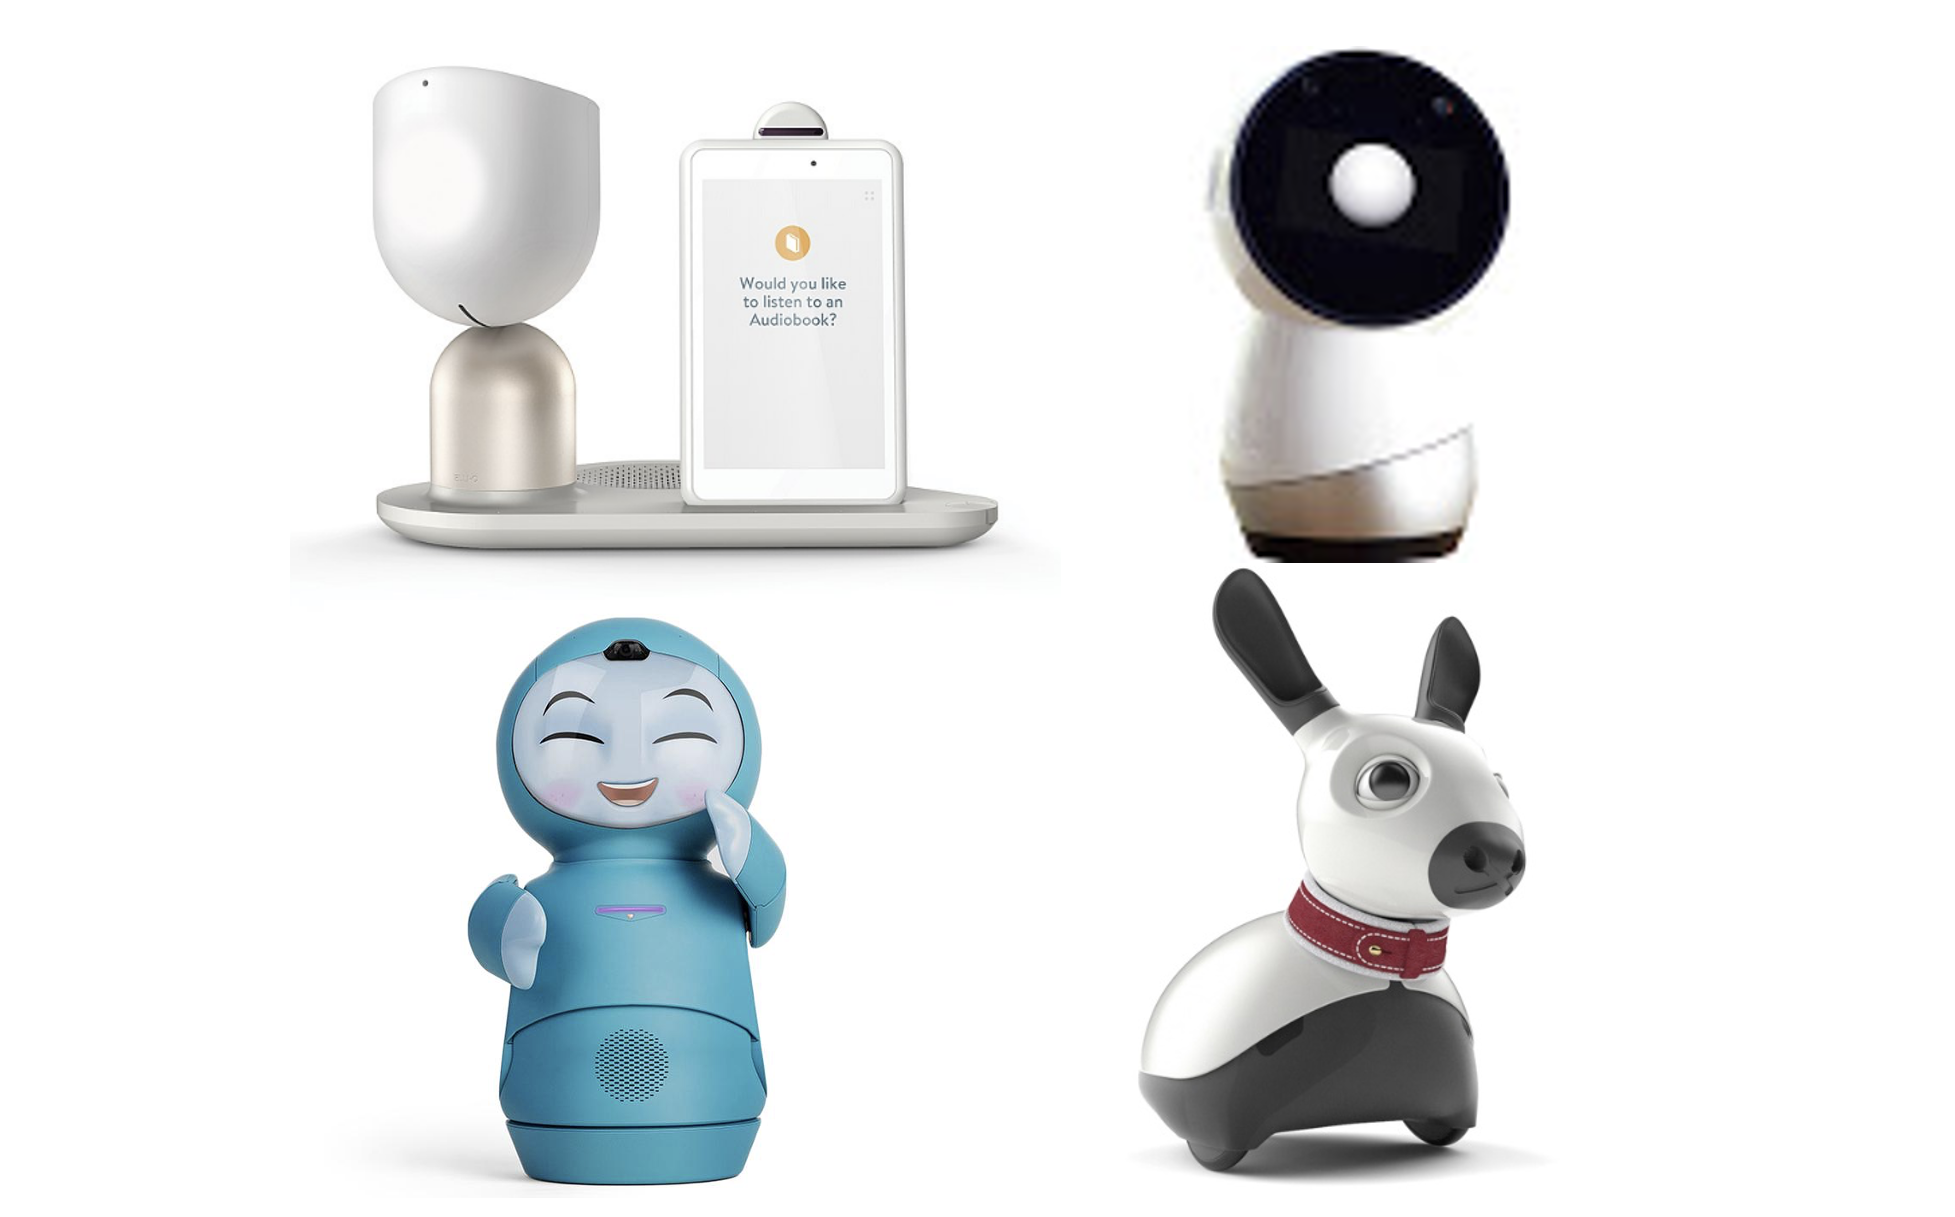 Caregivers' Little Helpers: How Can Social Robots Support Informal Caregivers with Monitoring the Health and Well-Being of Care Recipients?